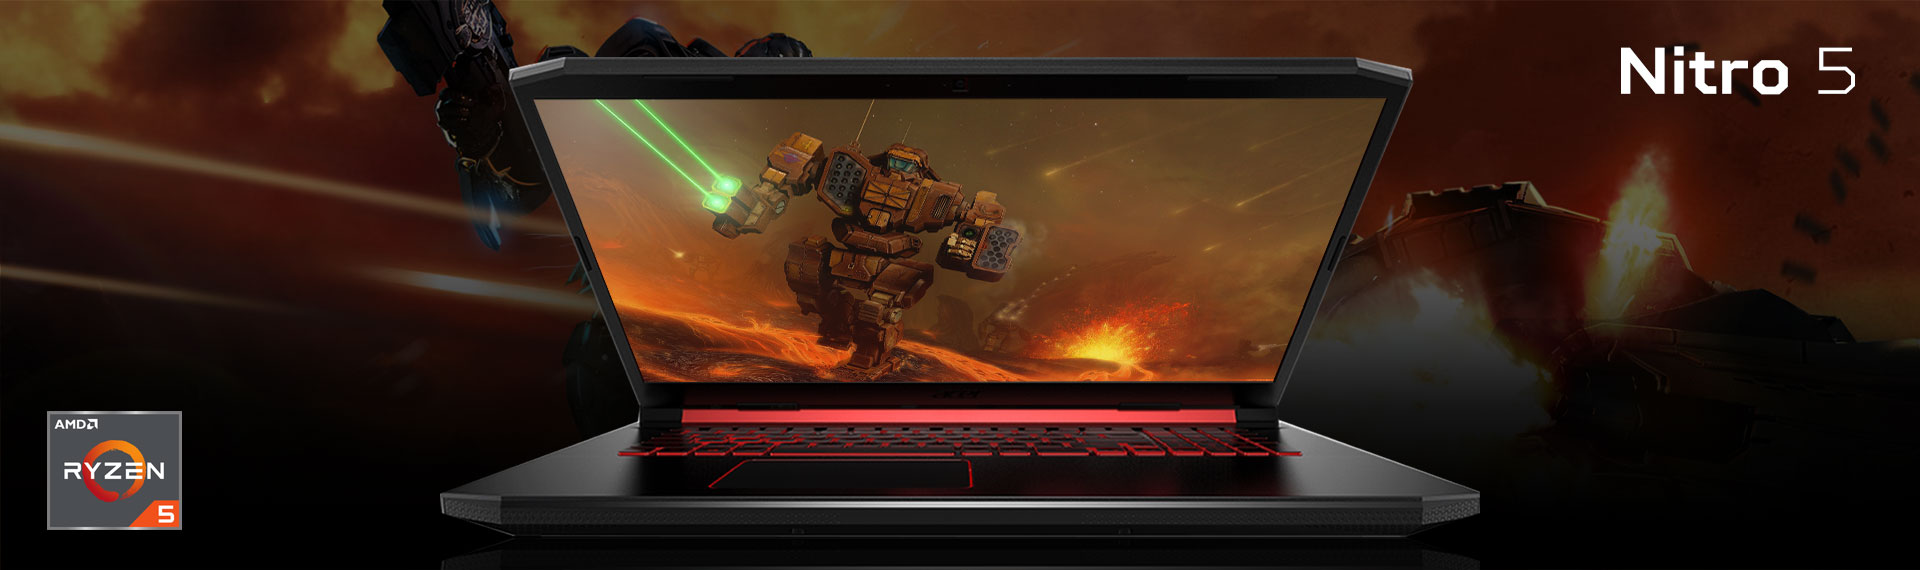 Laptop Gaming Nitro 5 Ryzen 5 3rd Generation dengan Kekuatan Multitasking